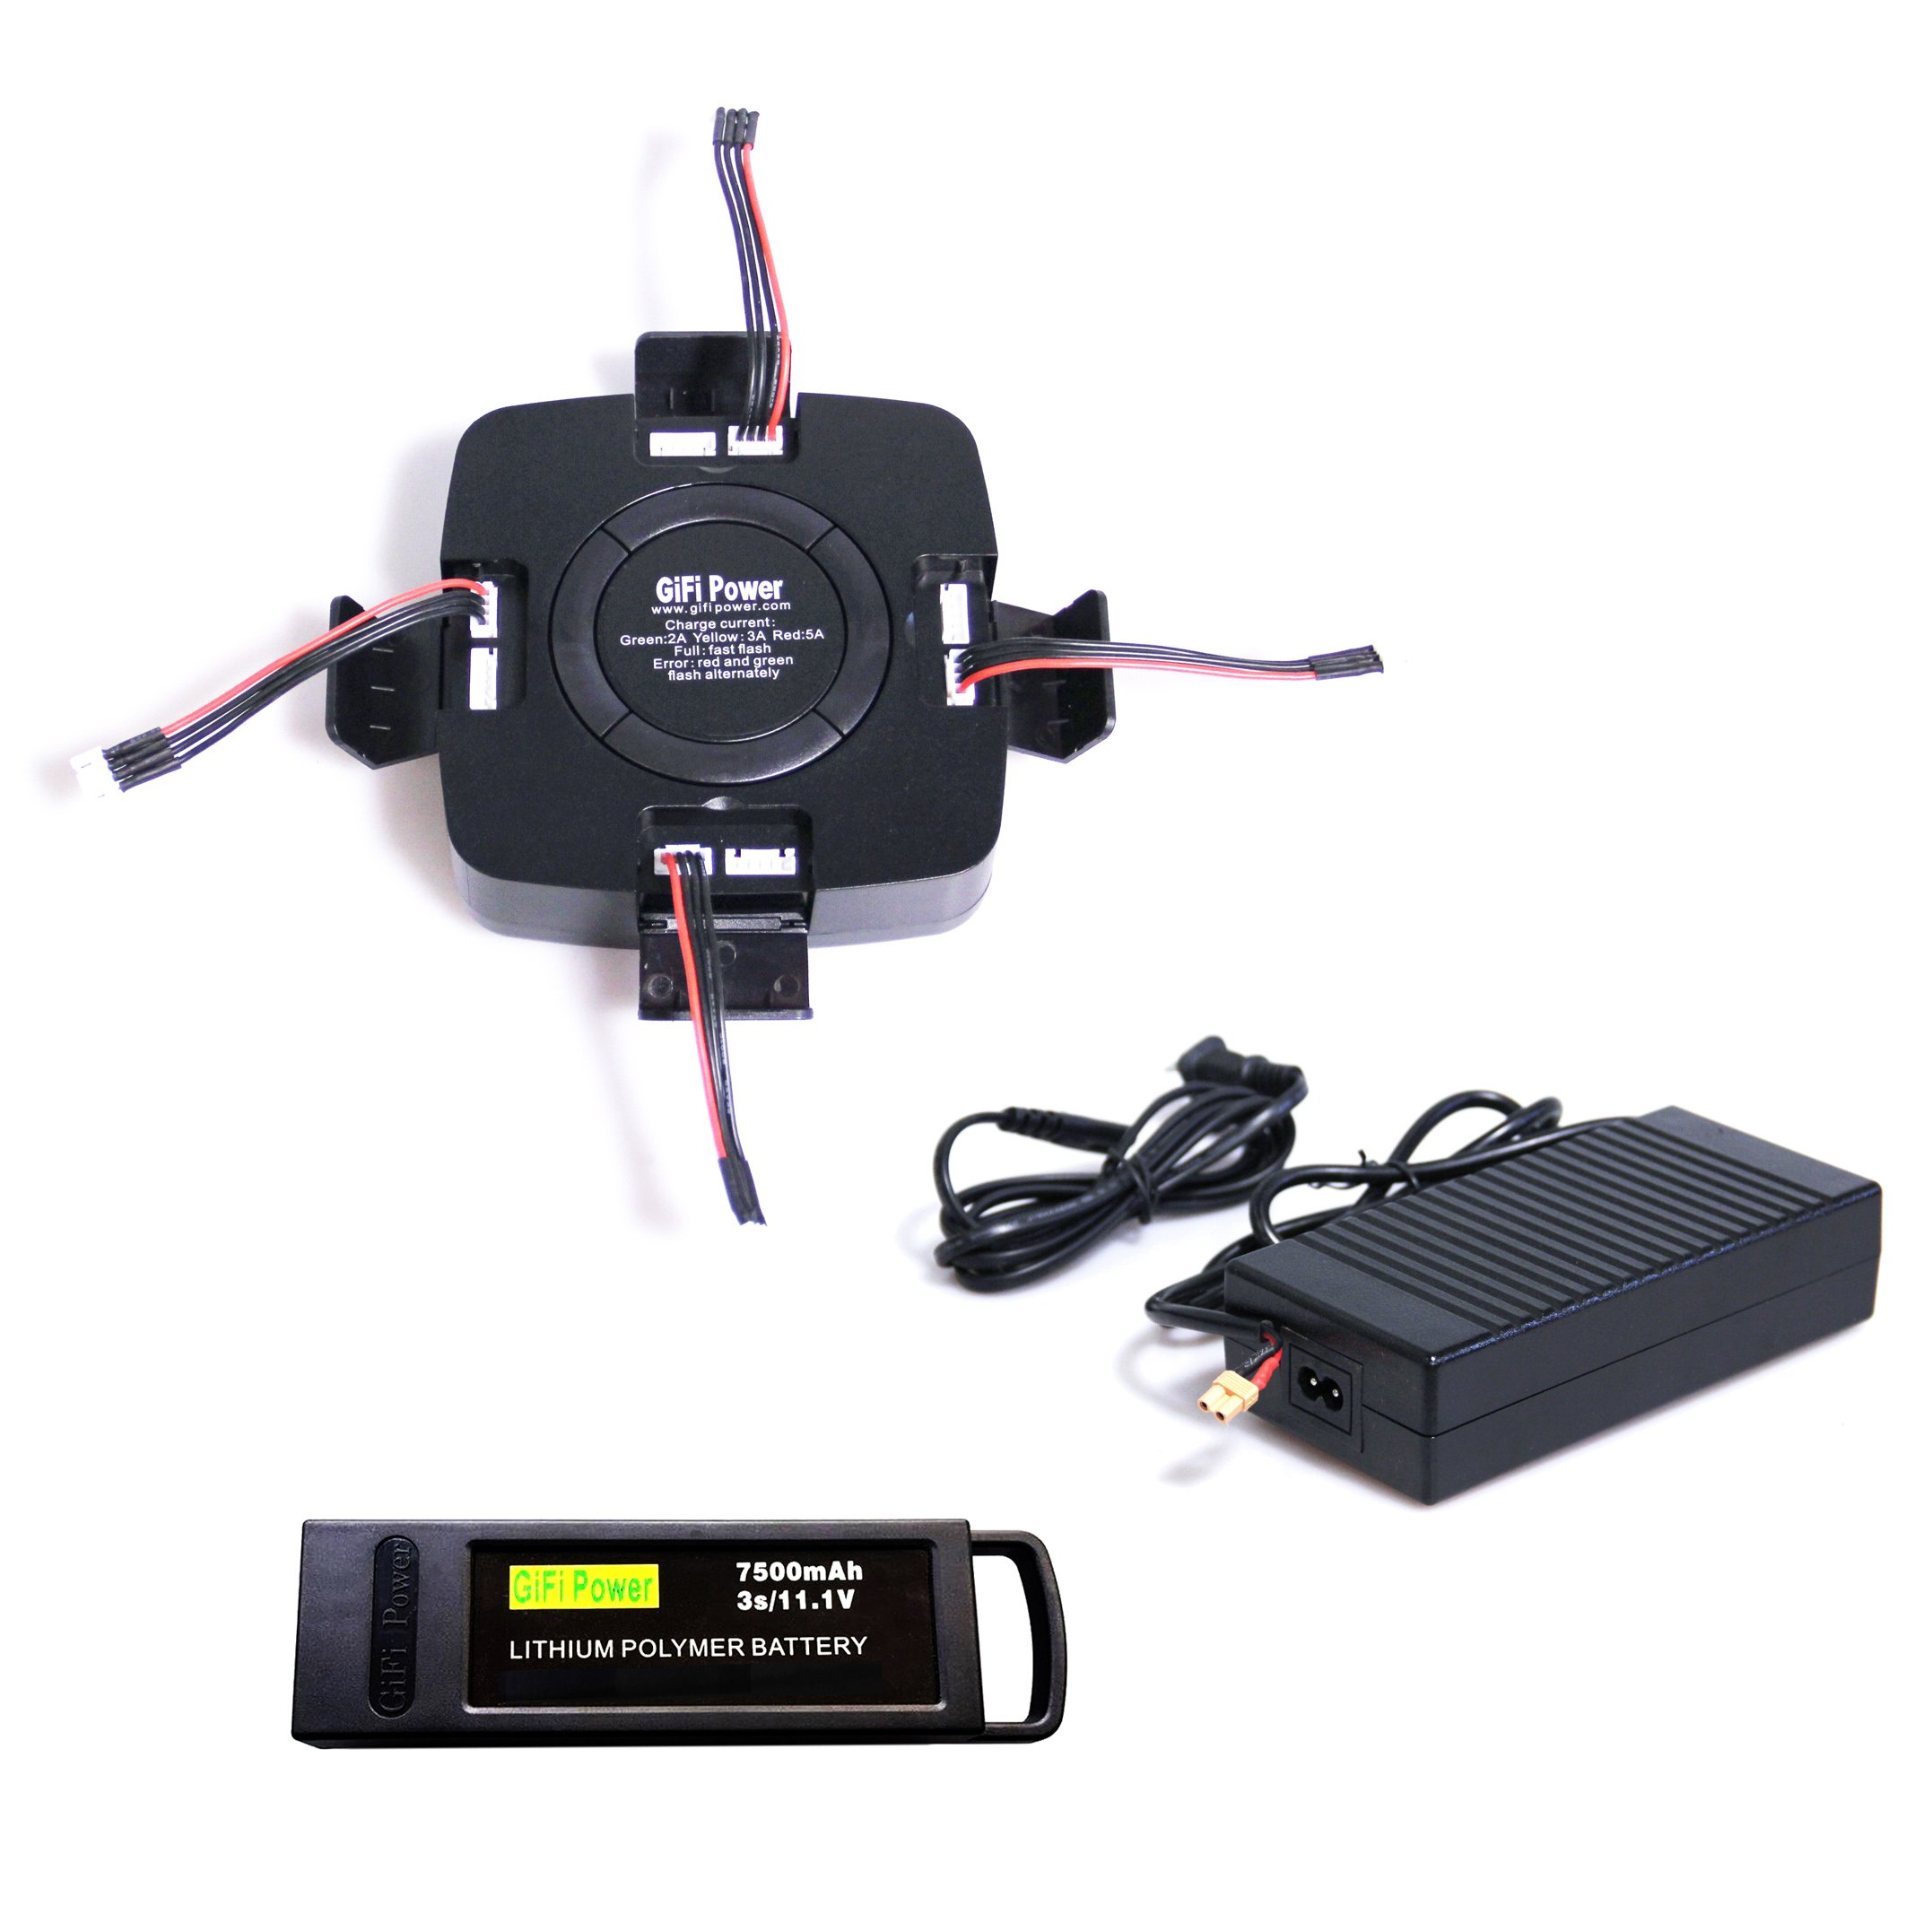 4in1 MultiPort Battery Charger for Yuneec Typhoon Q500